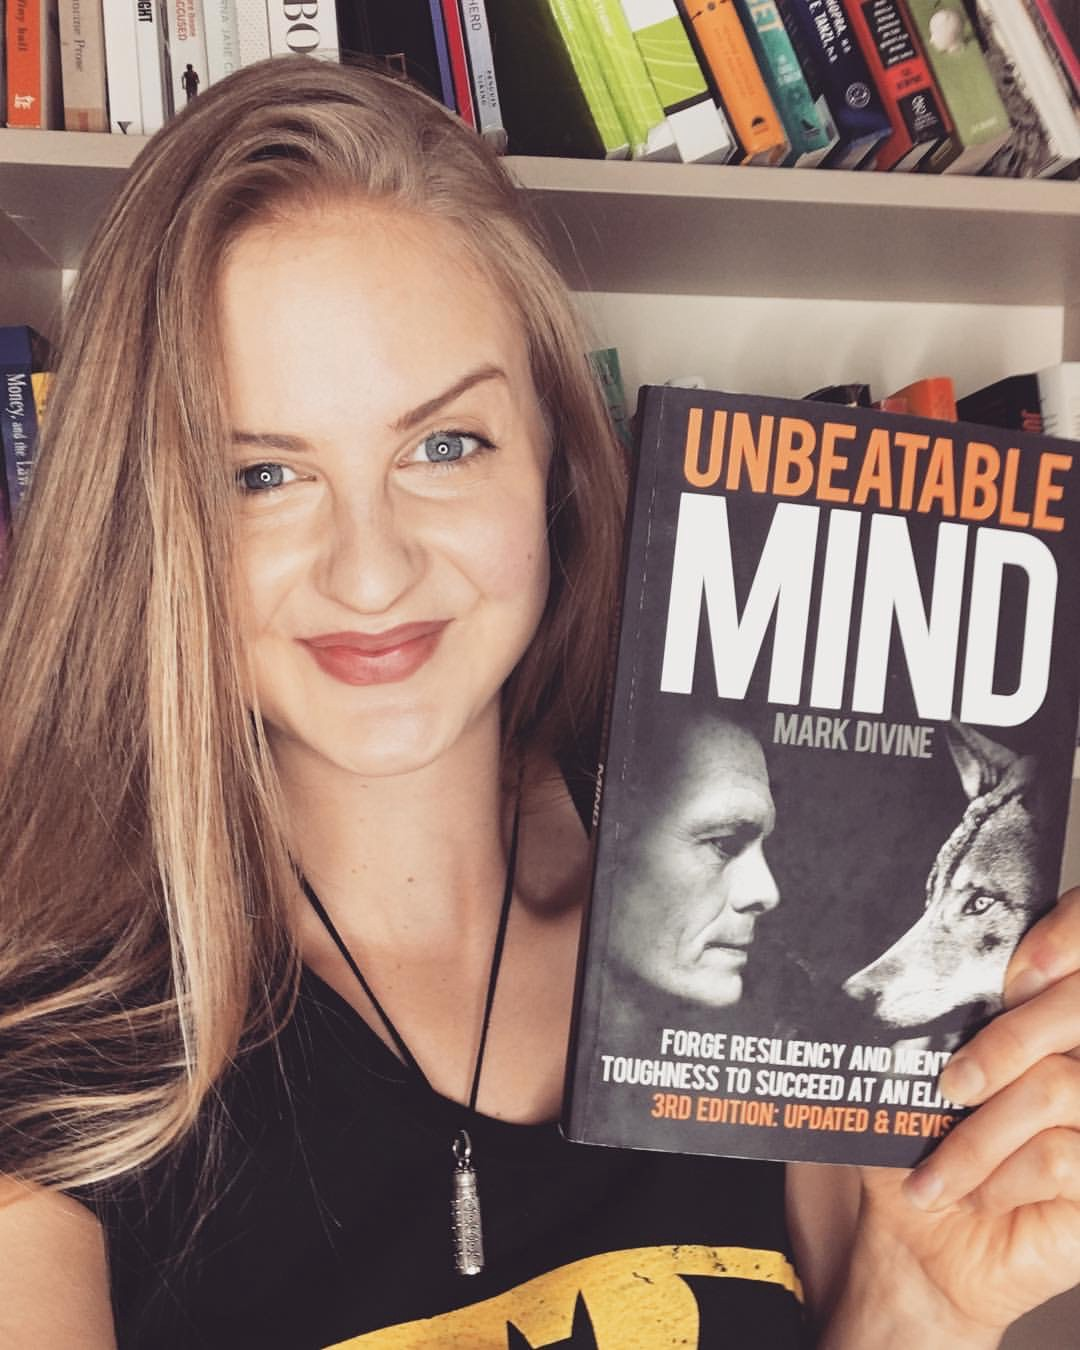 unbeatable mind forge resiliency and mental toughness to succeed at an elite level third edition